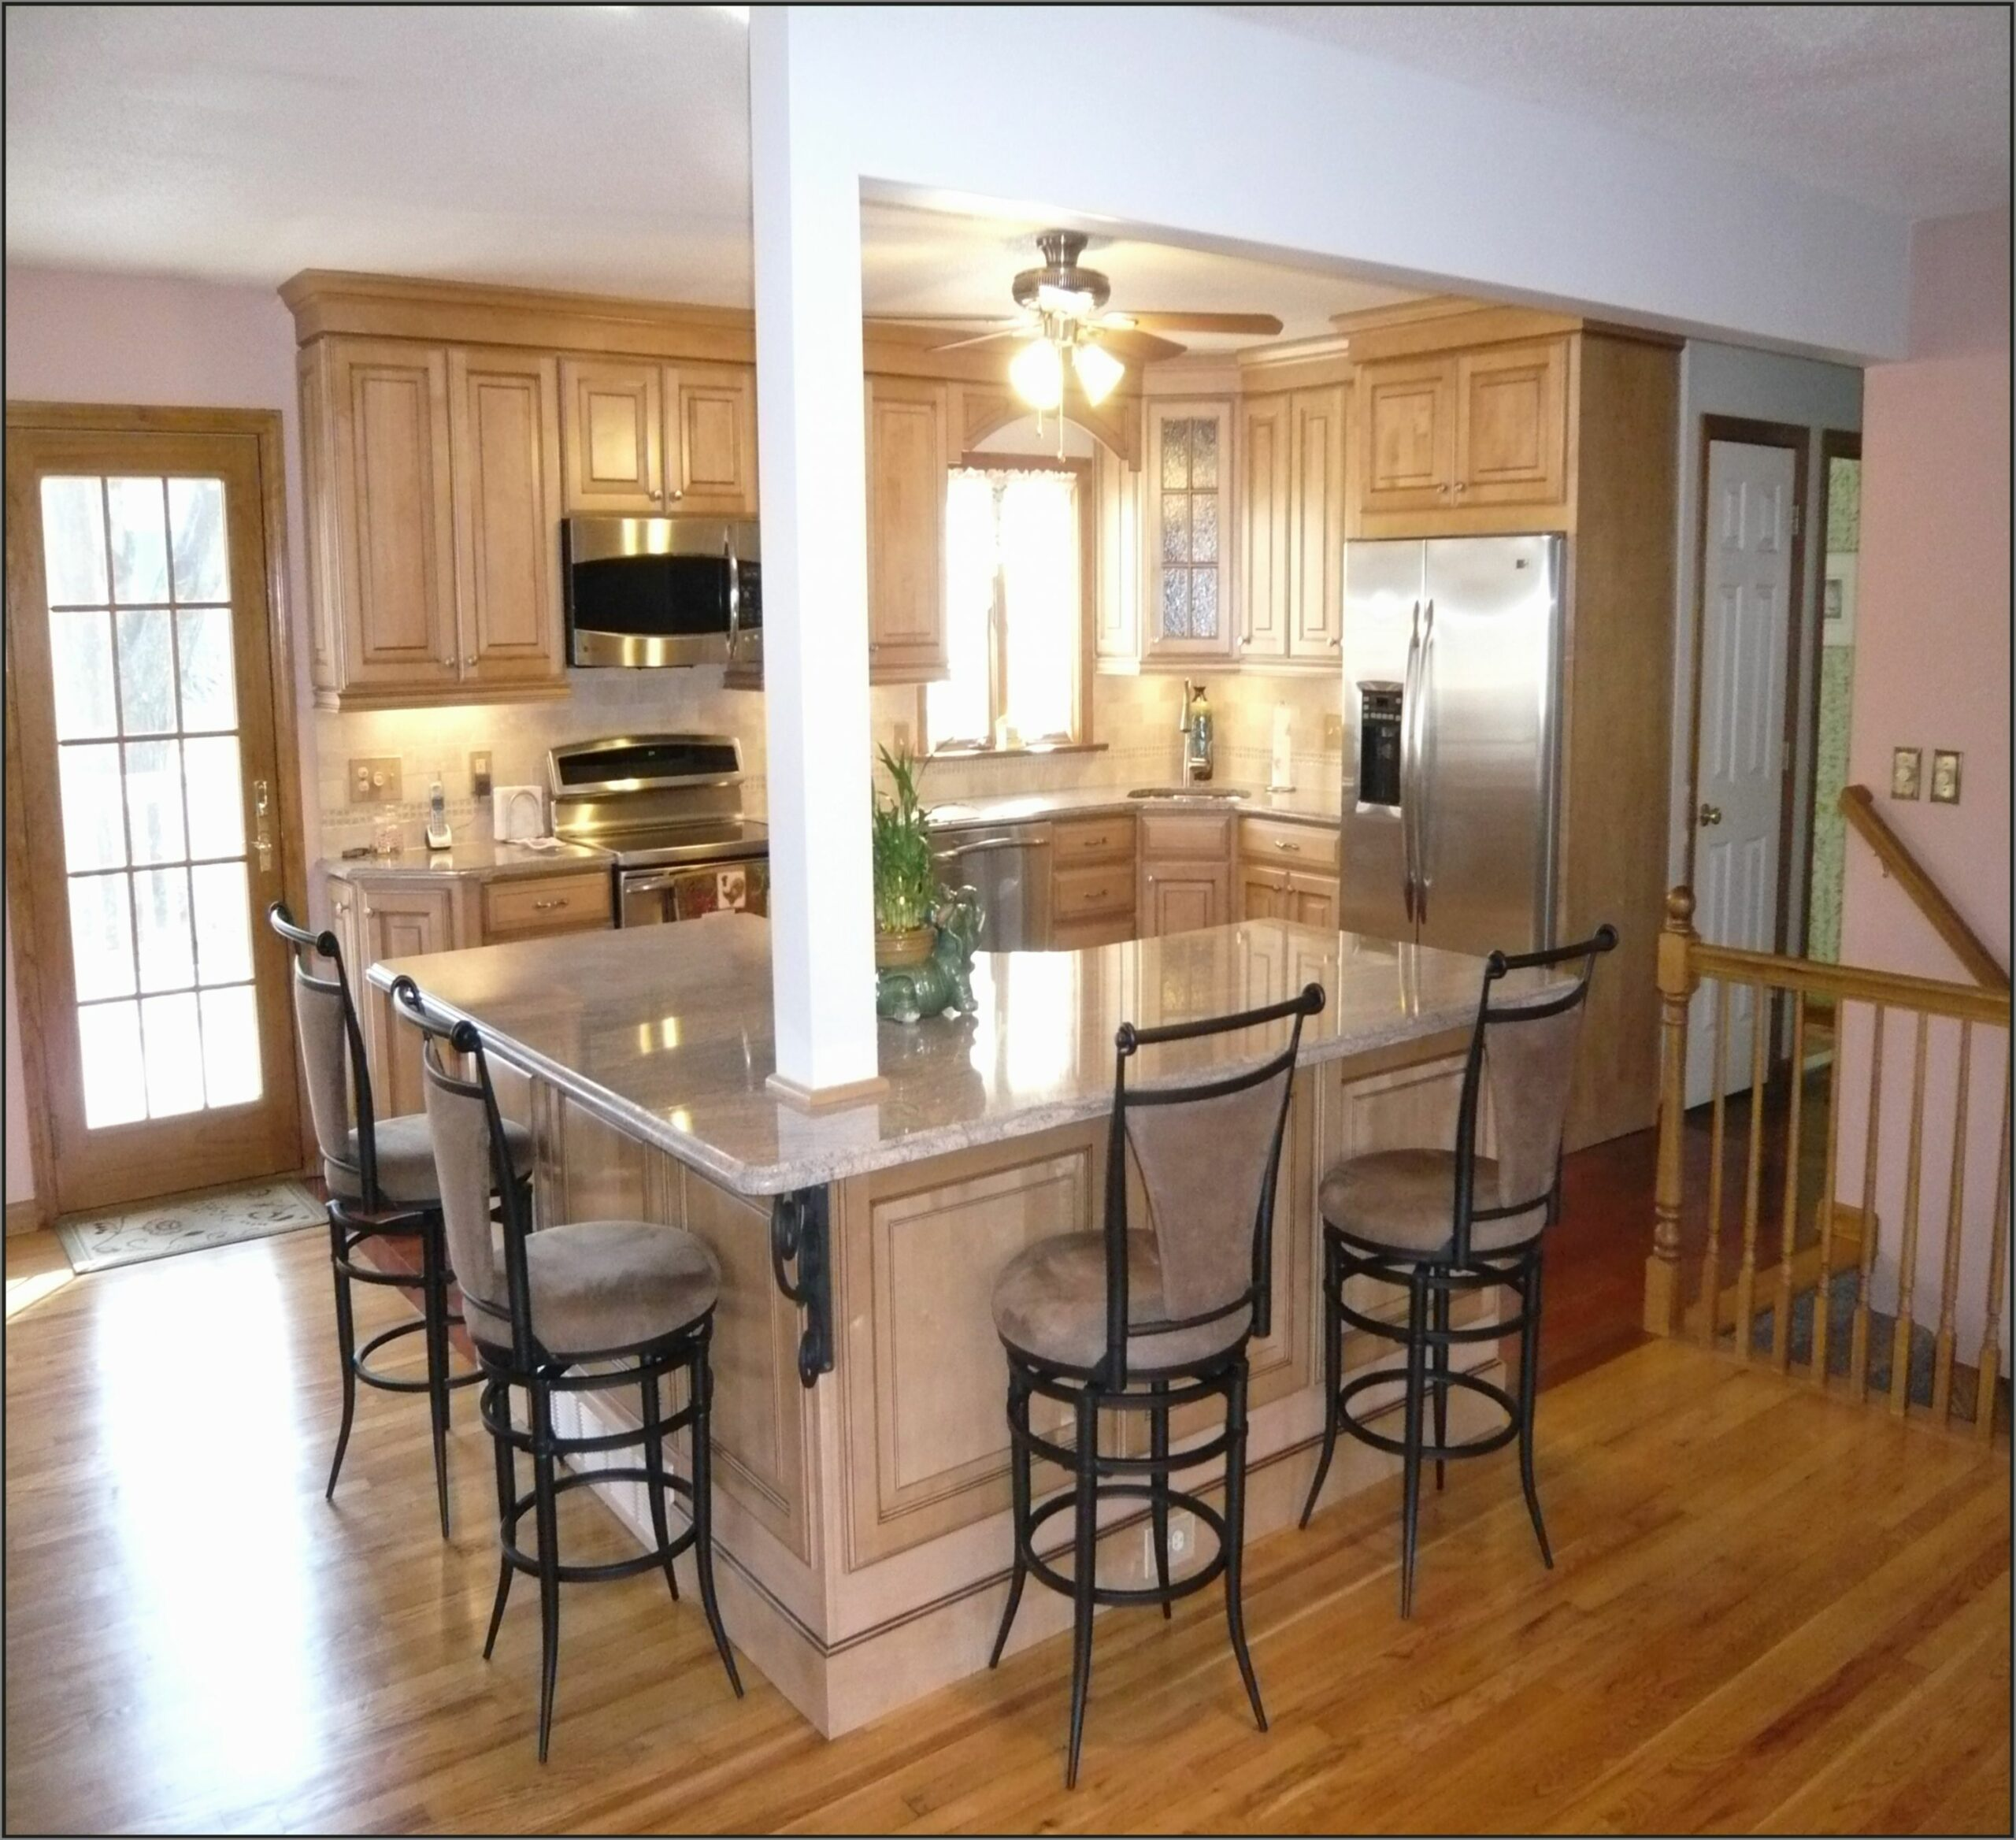 Ranch House Kitchen Remodel Ideas Cabinets Style Small Home Simple ..